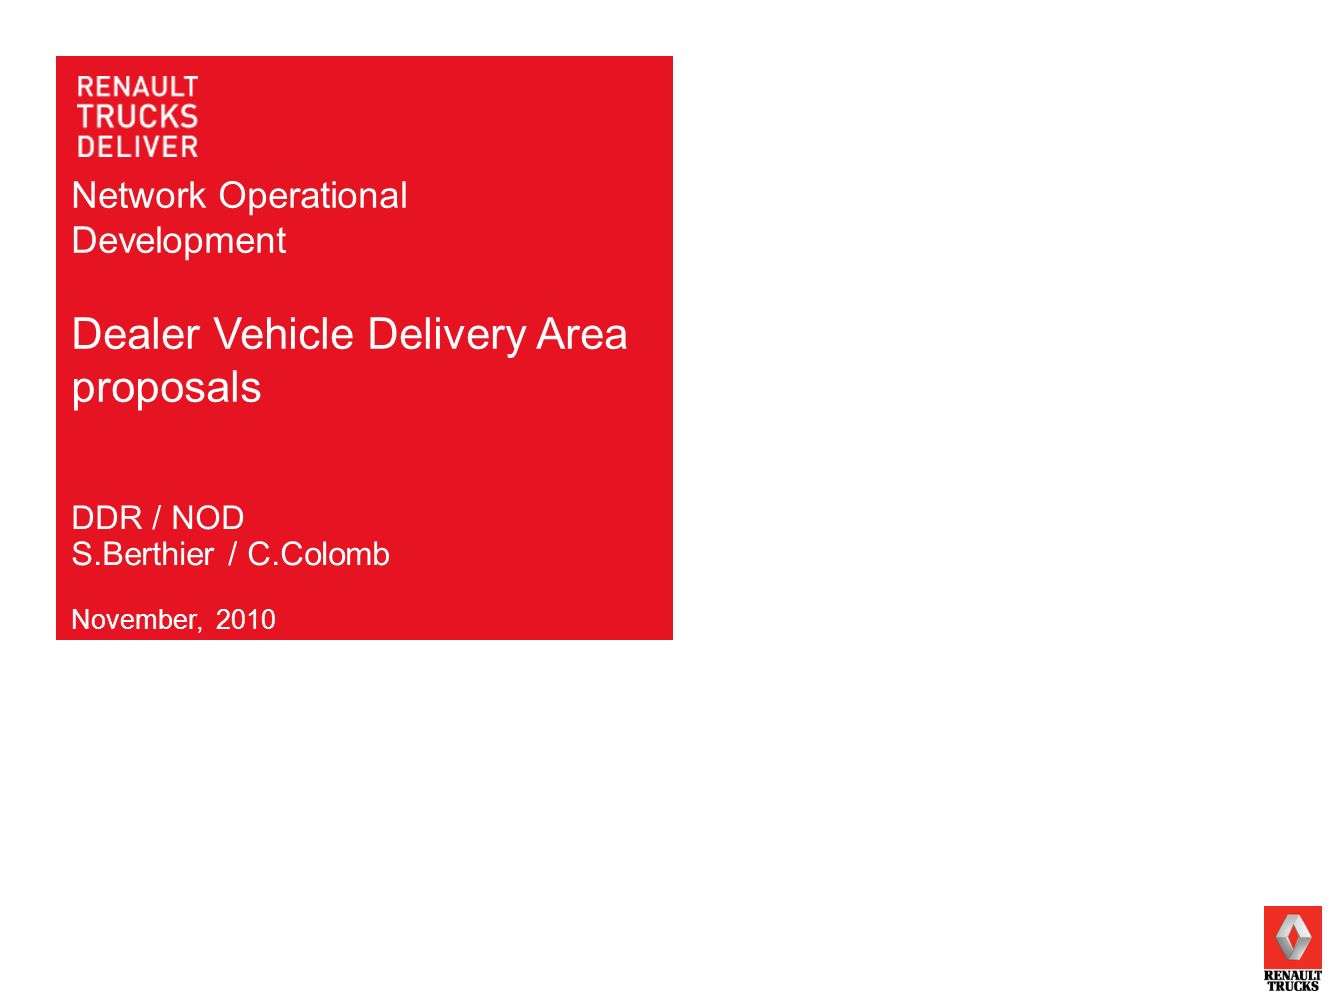 Network Operational Development Dealer Vehicle Delivery Area proposals November, 2010 DDR / NOD S.Berthier / C.Colomb